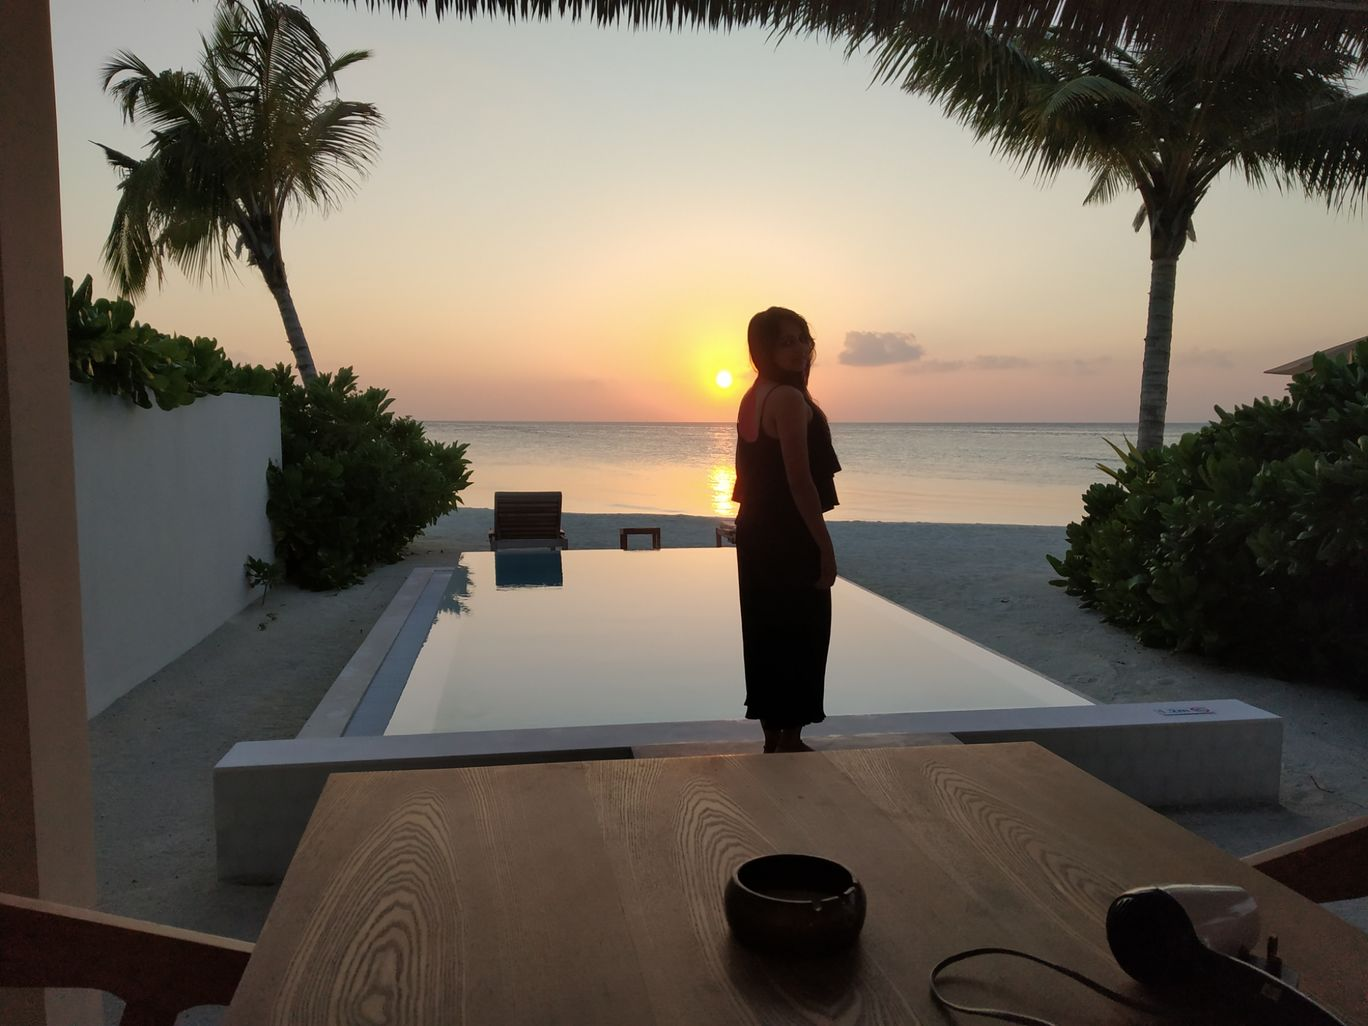 Photo of Olhuveli Beach & Spa Maldives By Pooja Daruka